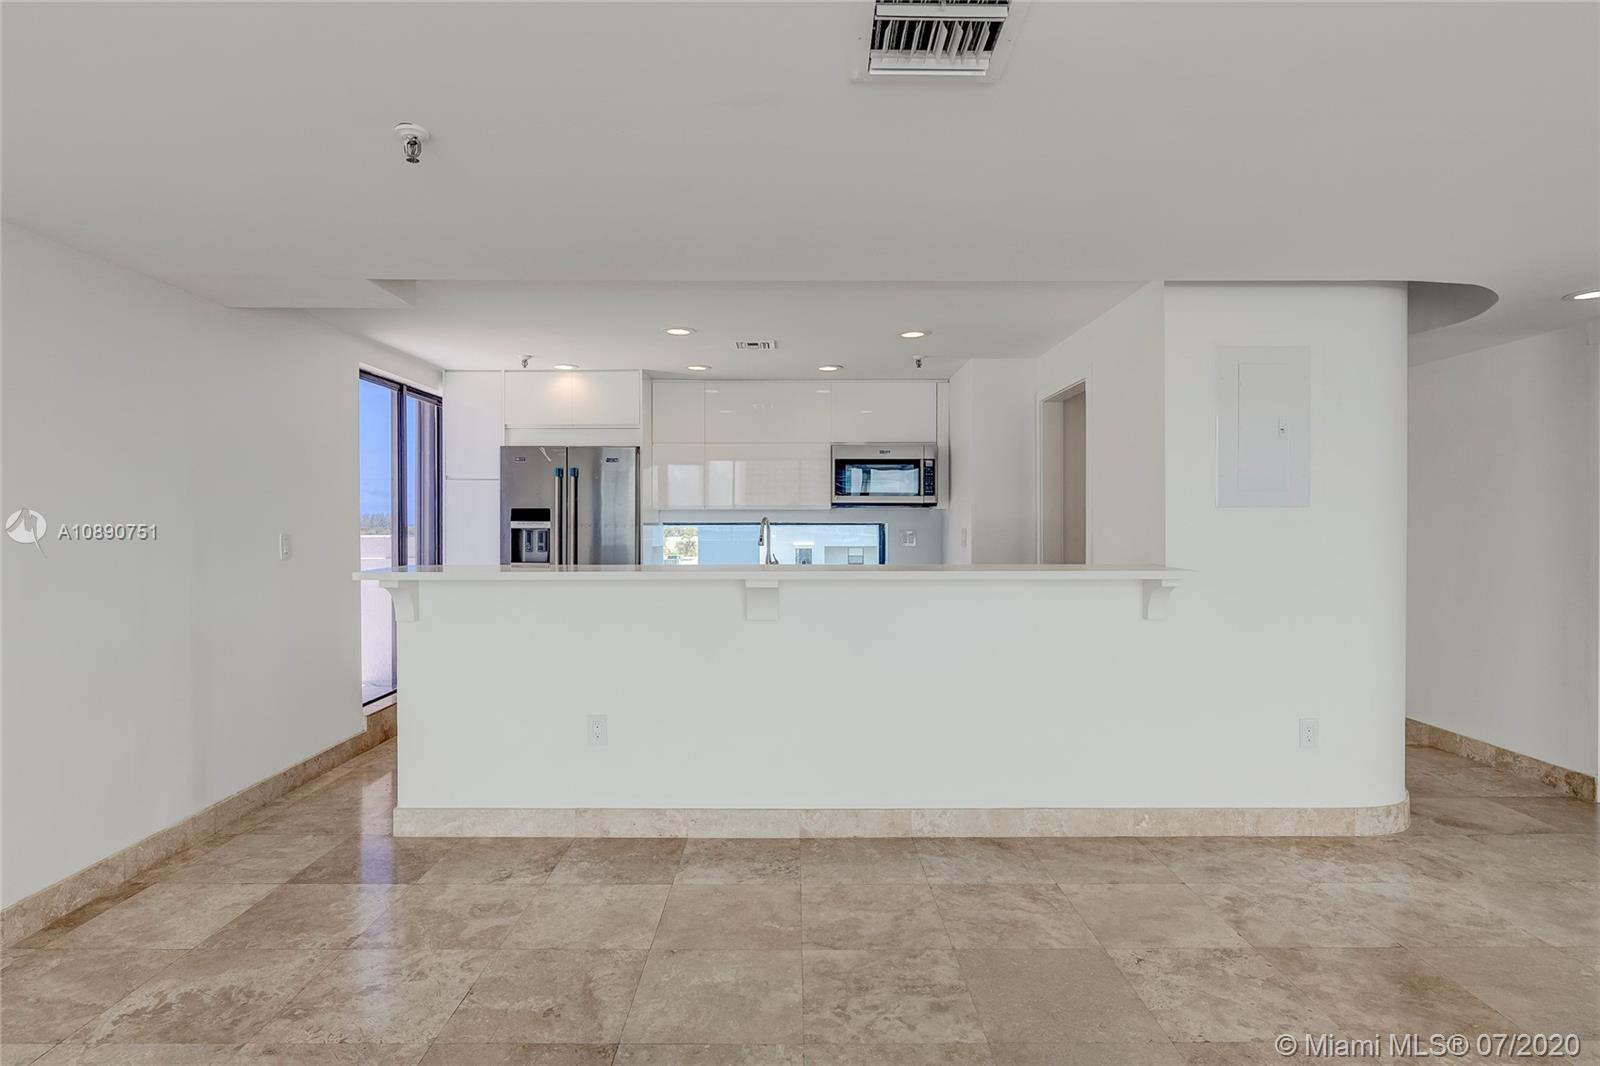 Photo of 425 Poinciana Island Drive #1444, Sunny Isles Beach, Florida, 33160 - Terrace view from living room area to the terrace in front of the primary bedroom